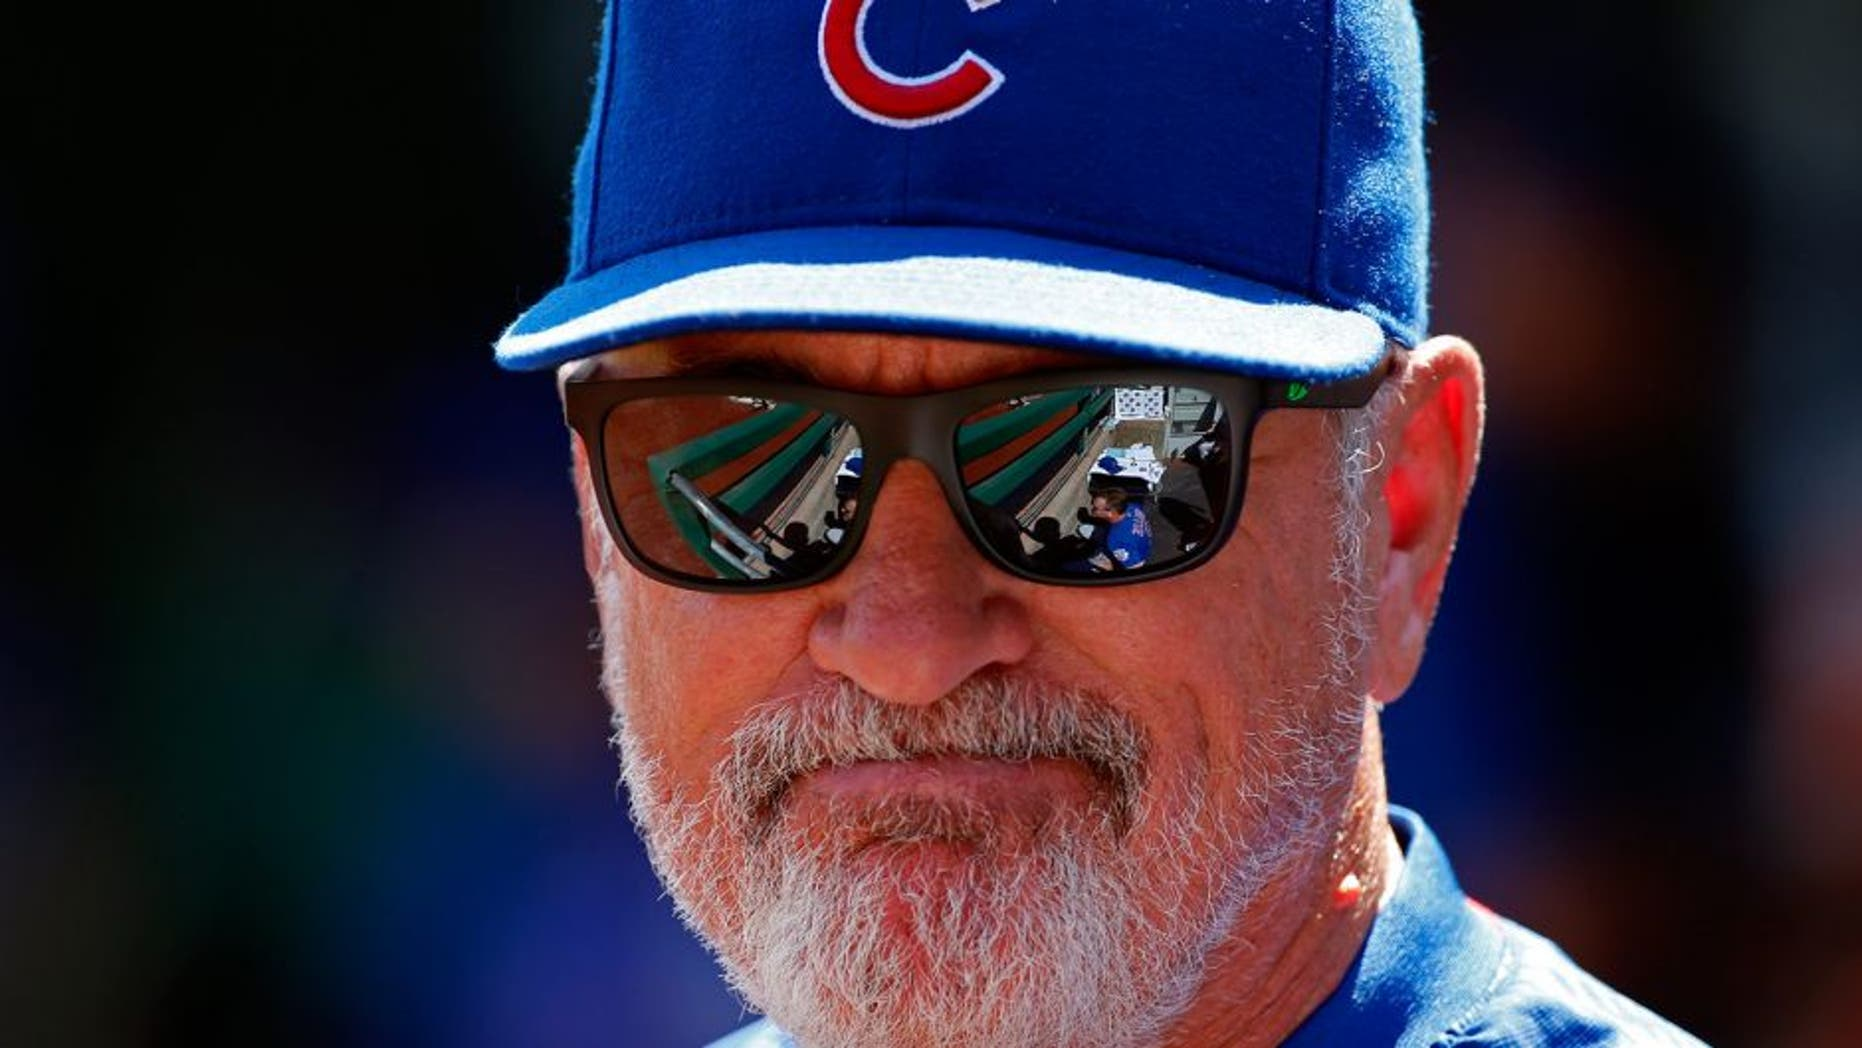 Chicago Cubs manager Joe Maddon stands in the dugout during the first baseball game of a doubleheader in Pittsburgh against the Pittsburgh Pirates, Tuesday, Sept. 15, 2015. (AP Photo/Gene J. Puskar)